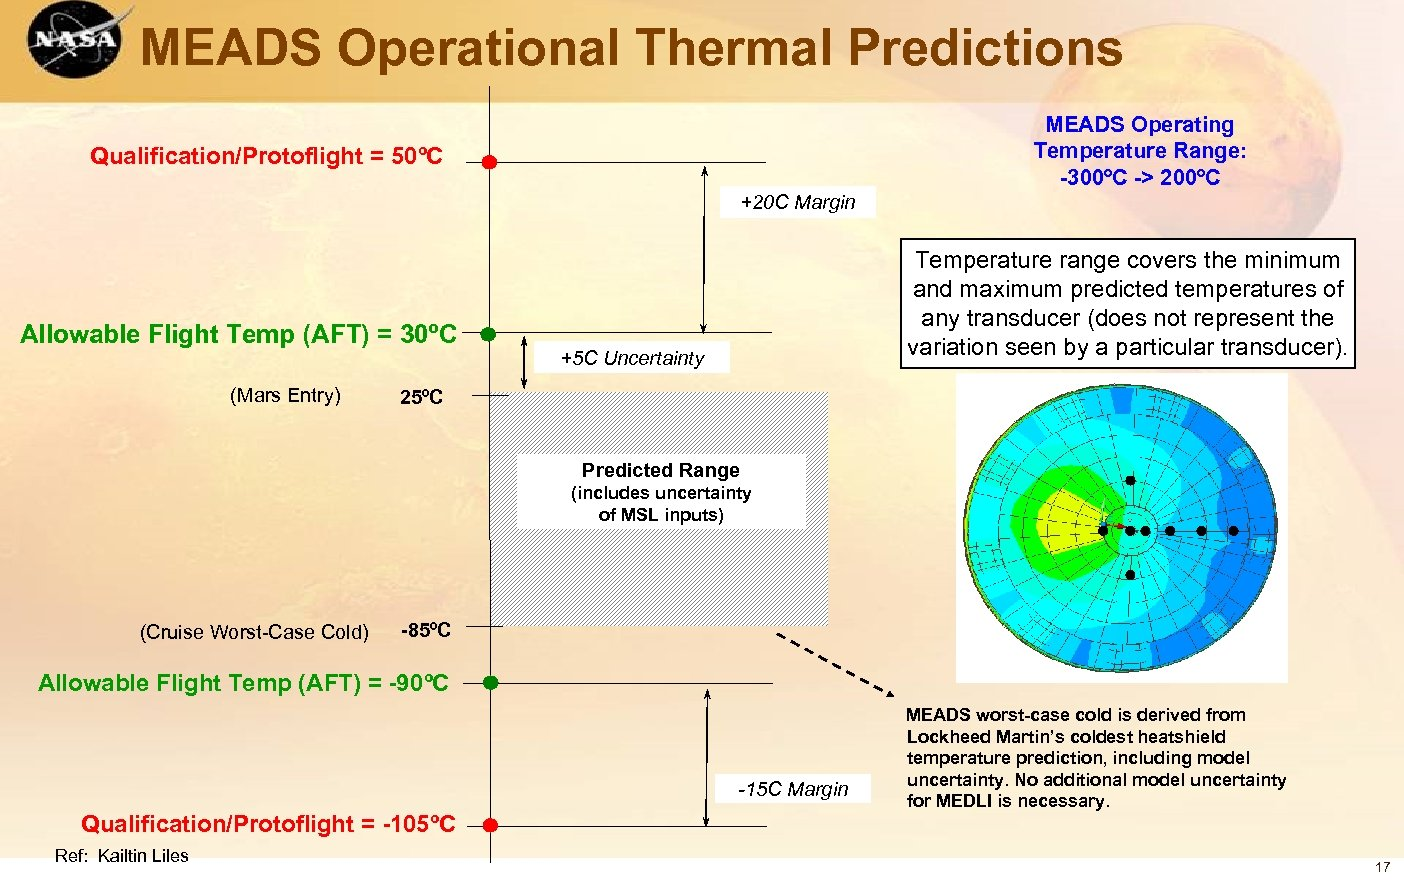 MEADS Operational Thermal Predictions MEADS Operating Temperature Range: -300ºC -> 200ºC Qualification/Protoflight = 50ºC